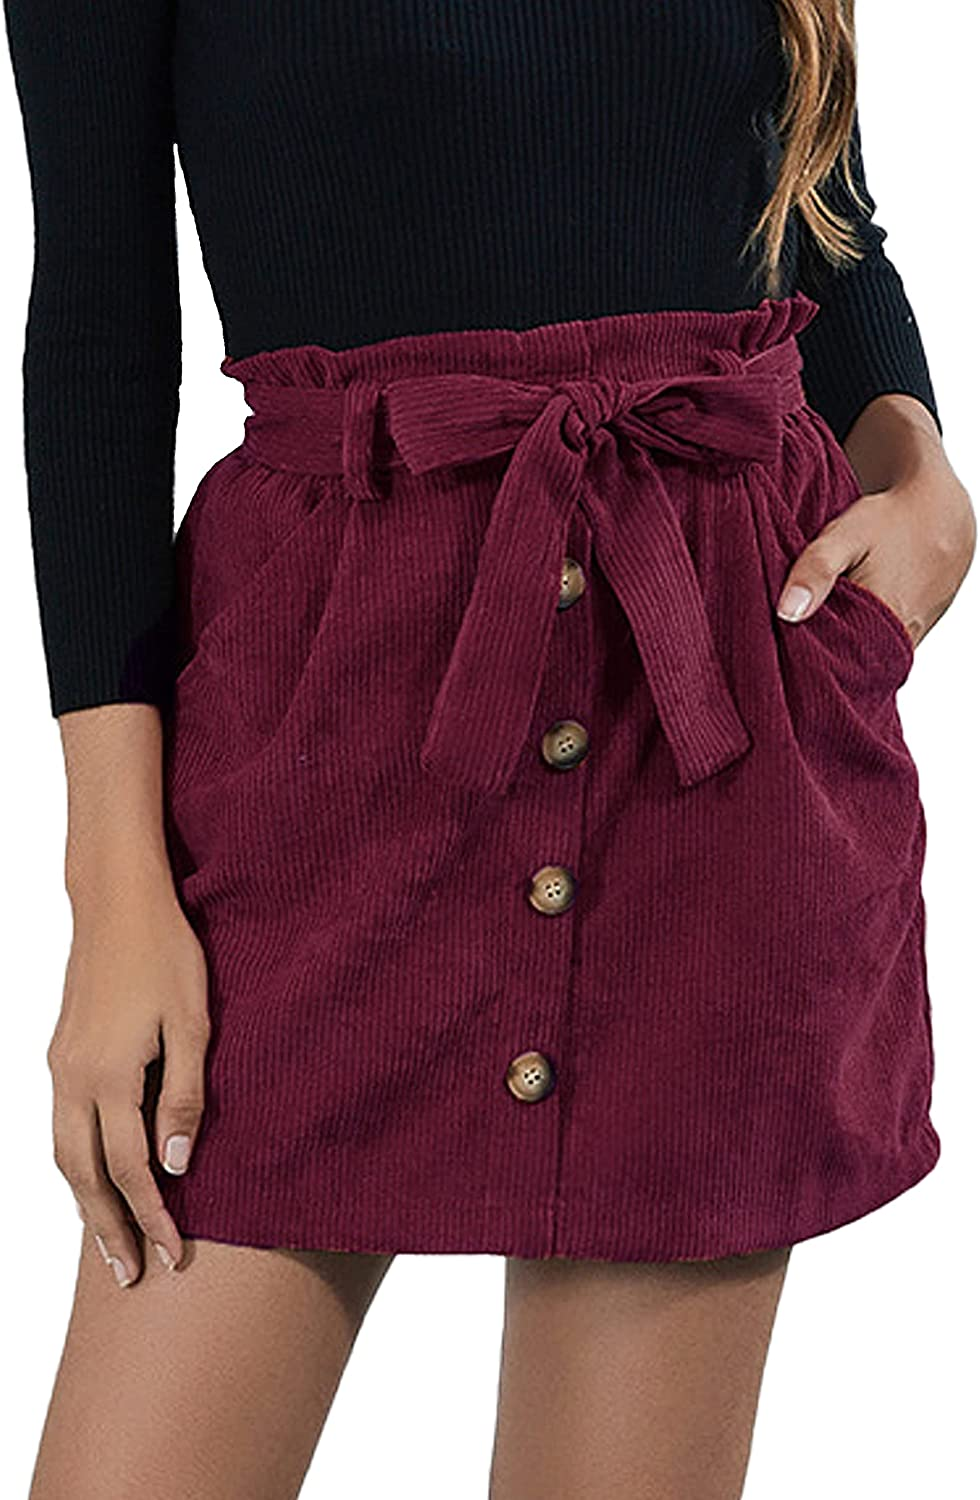 Bianstore Women's Corduroy Paperbag High Waisted Pockets Mini Skirts with Belt